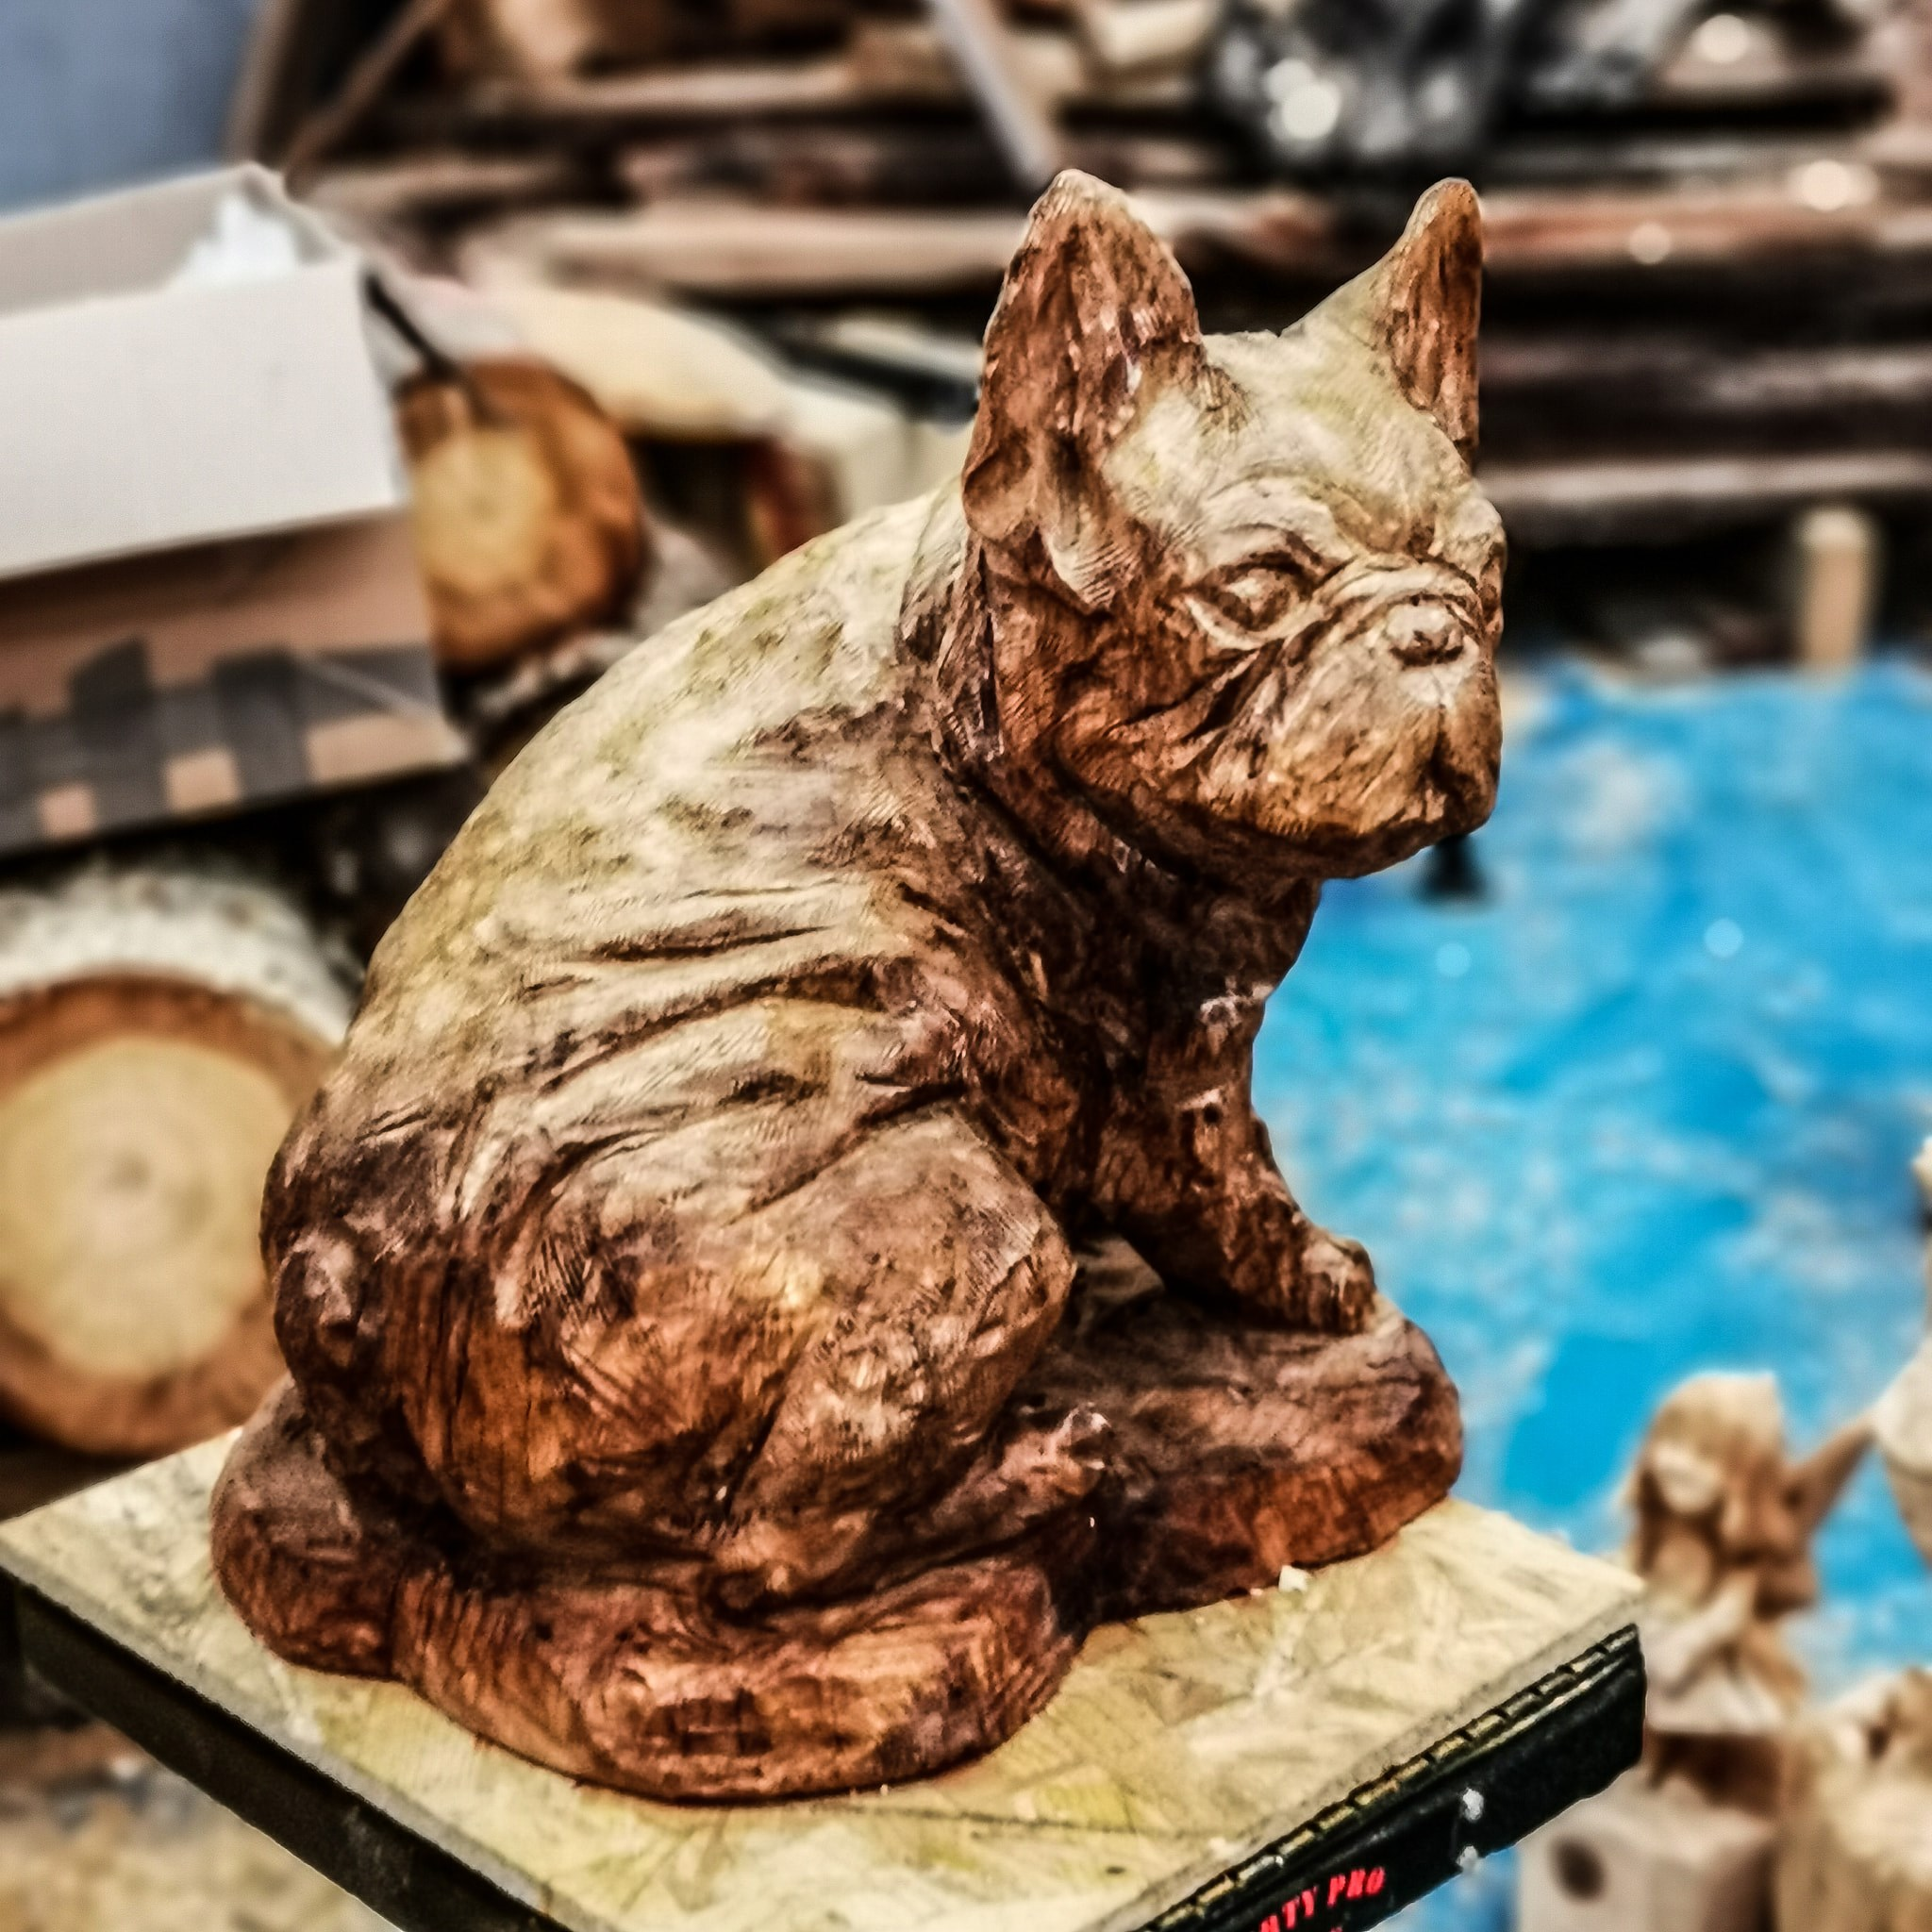 why is art expensive? photo shows a small wooden sculpture of a bulldog by simon o'rourke.